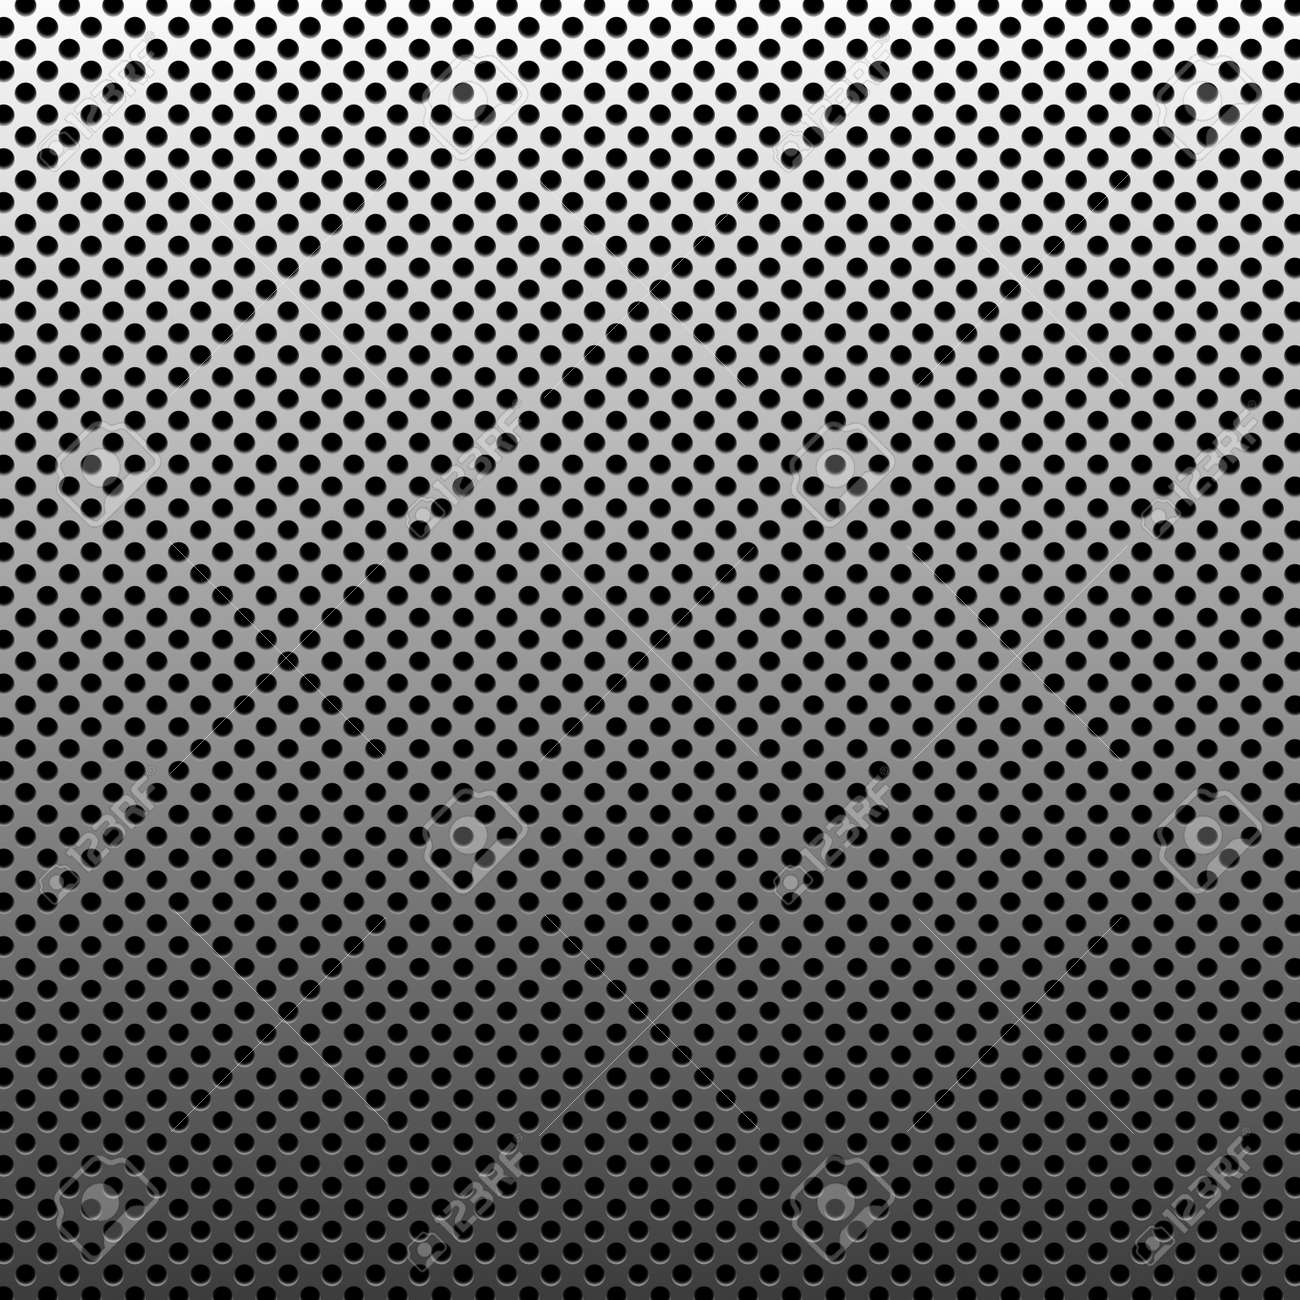 Circle texture metal abstract background with dots Stock Photo - 9538307